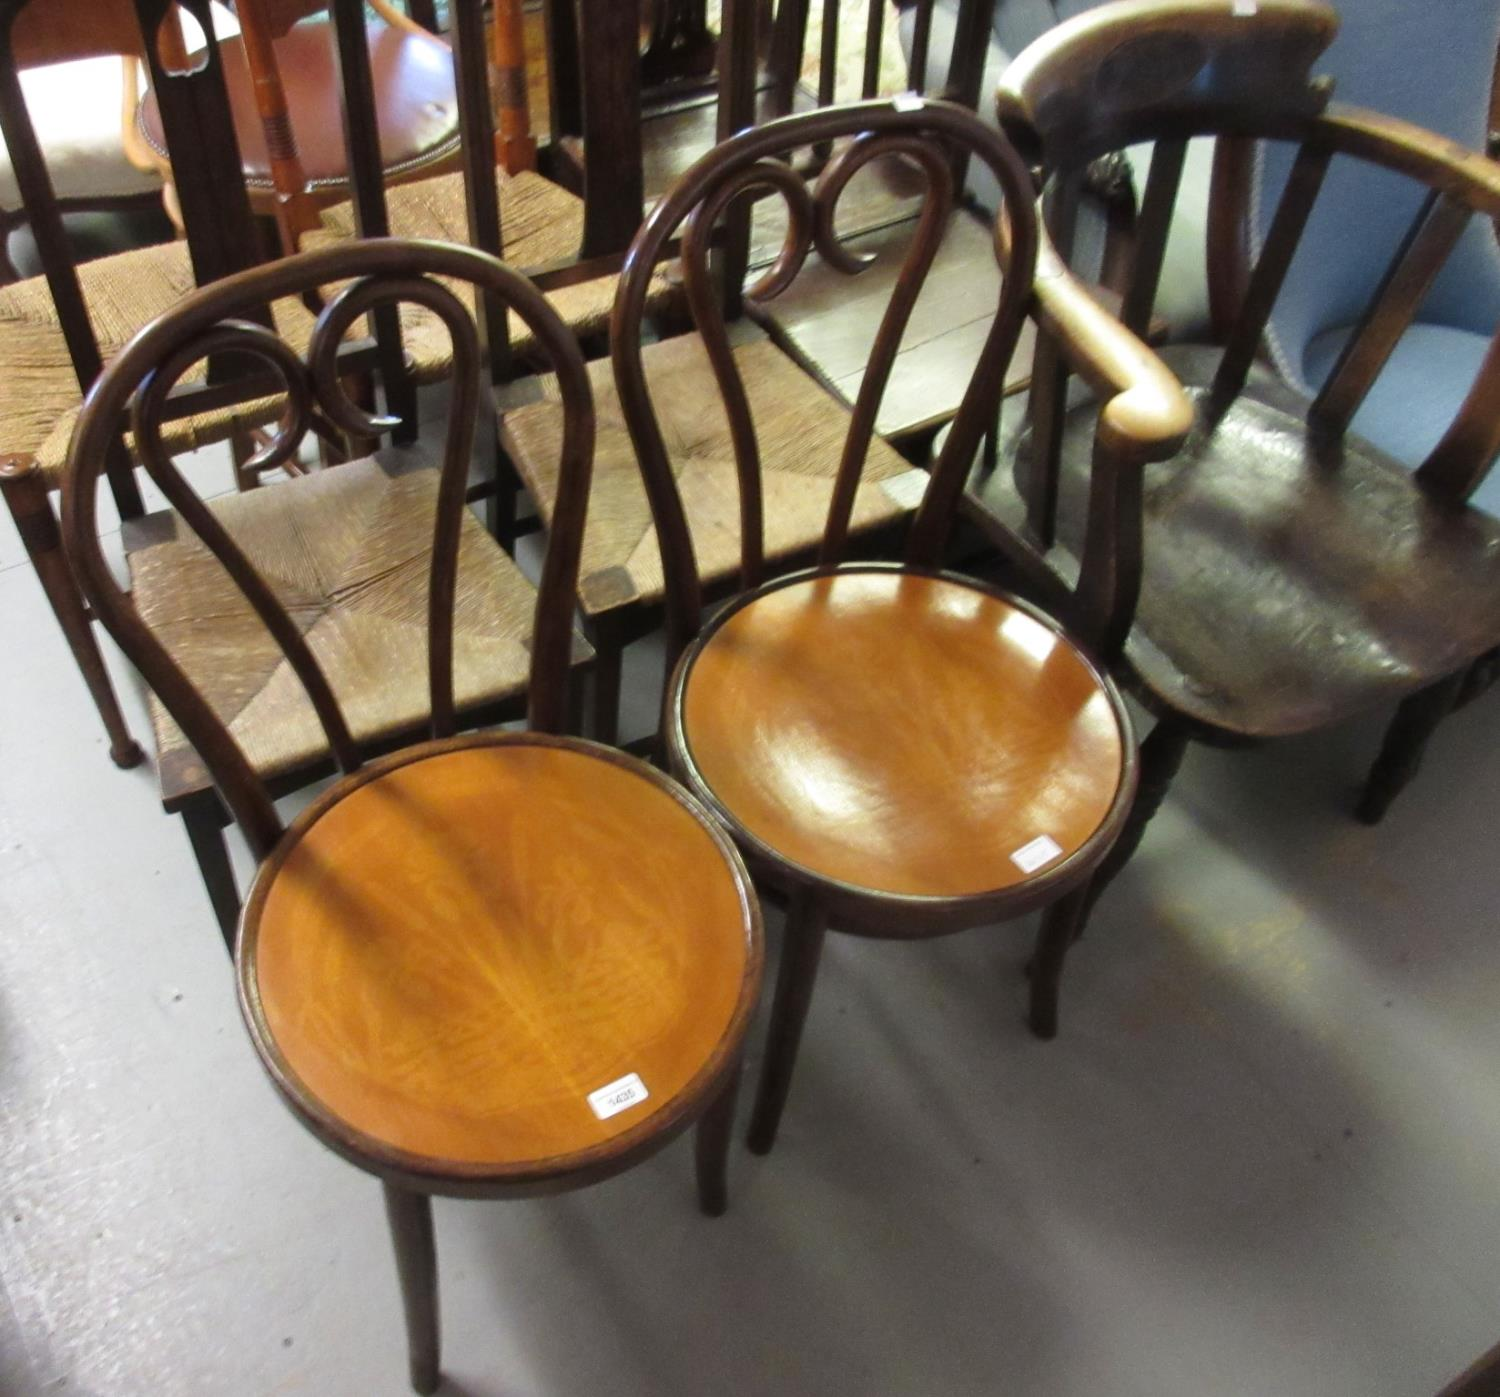 Pair of Bentwood cafe chairs, No. 16 by Thonet with iris and waterlily decorations, circa 1950